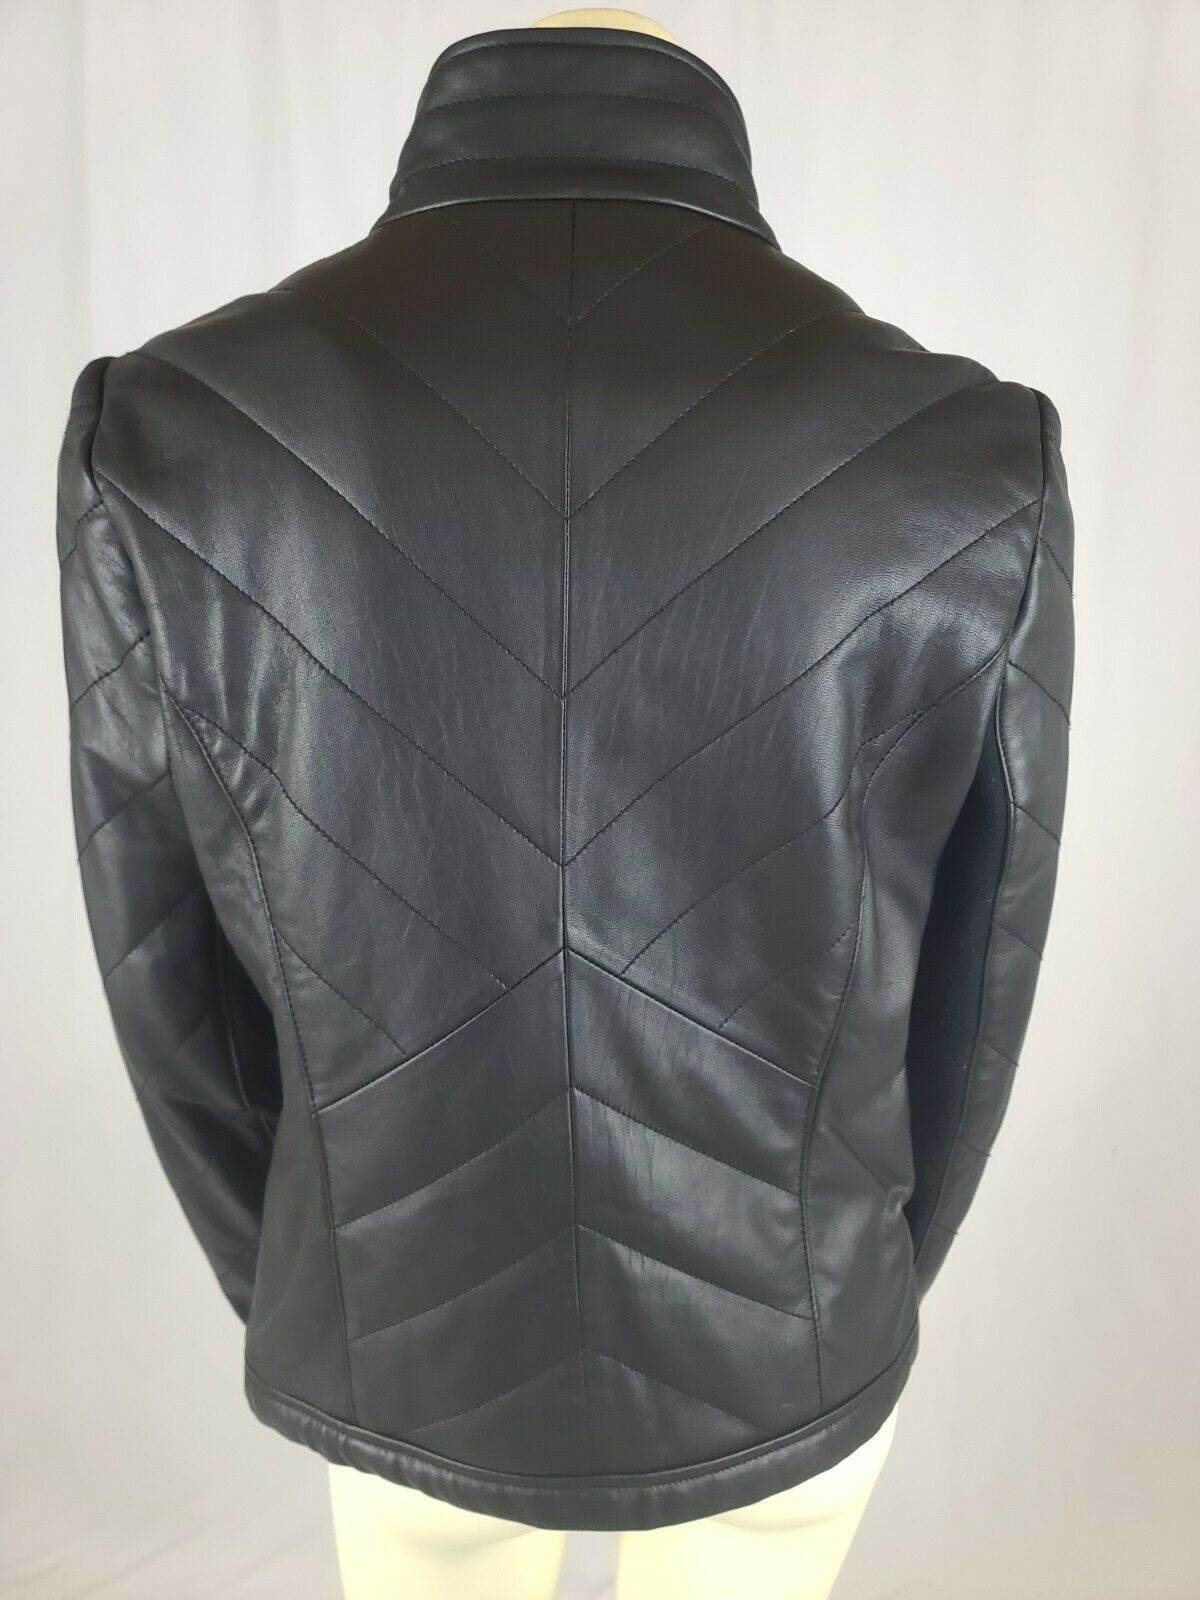 Badgley Mischka Women's Quilted Soft Leather Moto Jacket Black SZ Small Gold